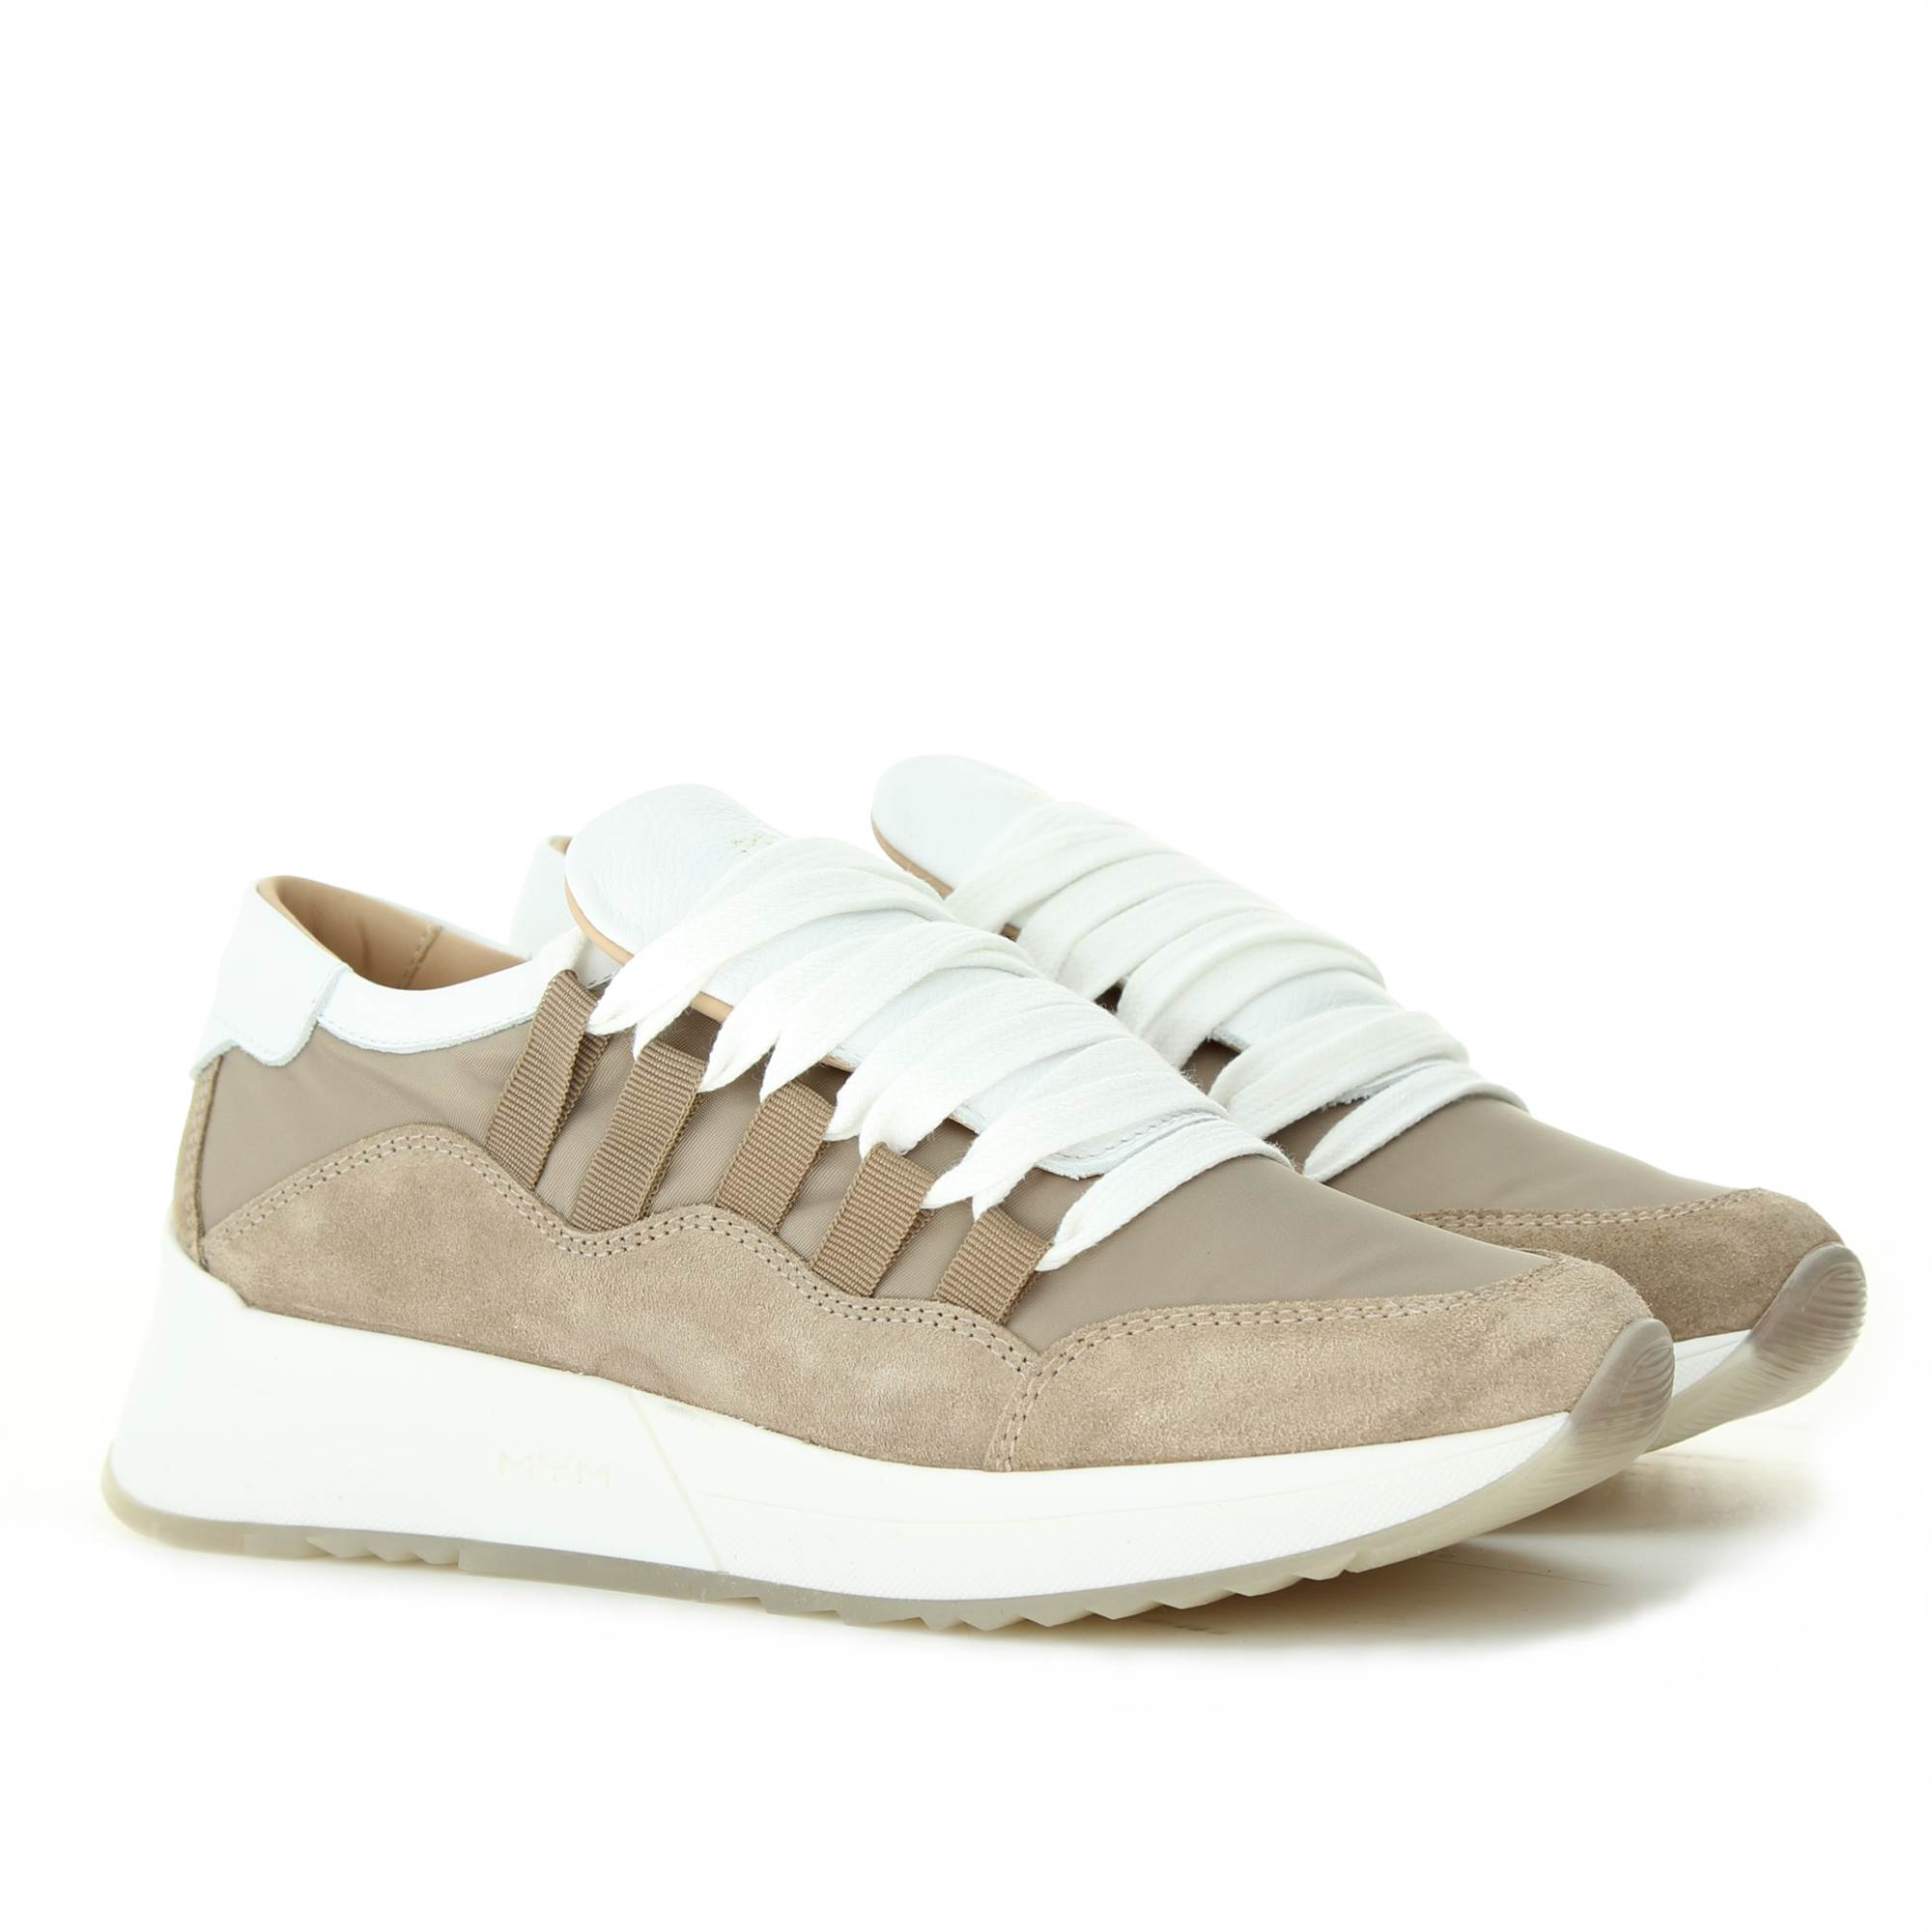 MYM ITALIA WILLY TAUPE BIANCO Shoes Woman